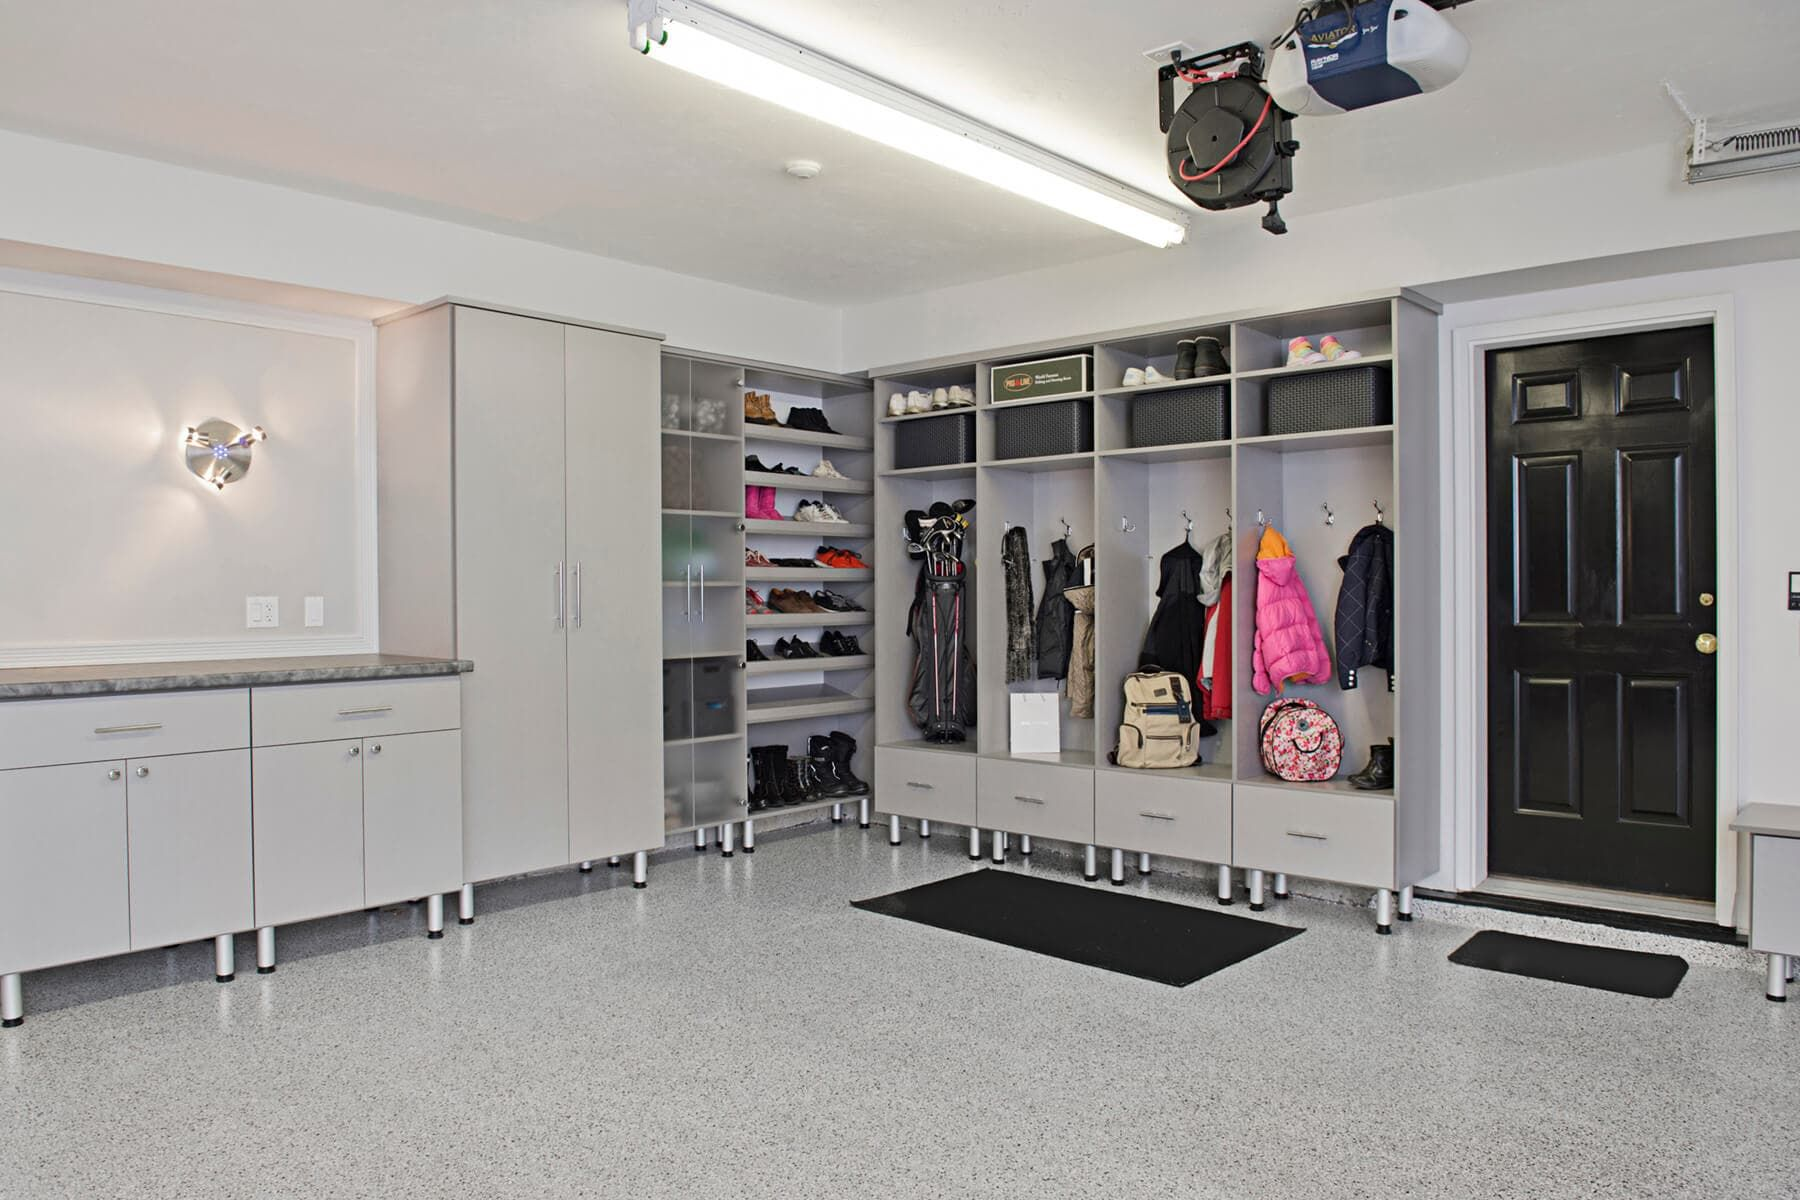 concrete garage storage cabinets coatings galleries closet